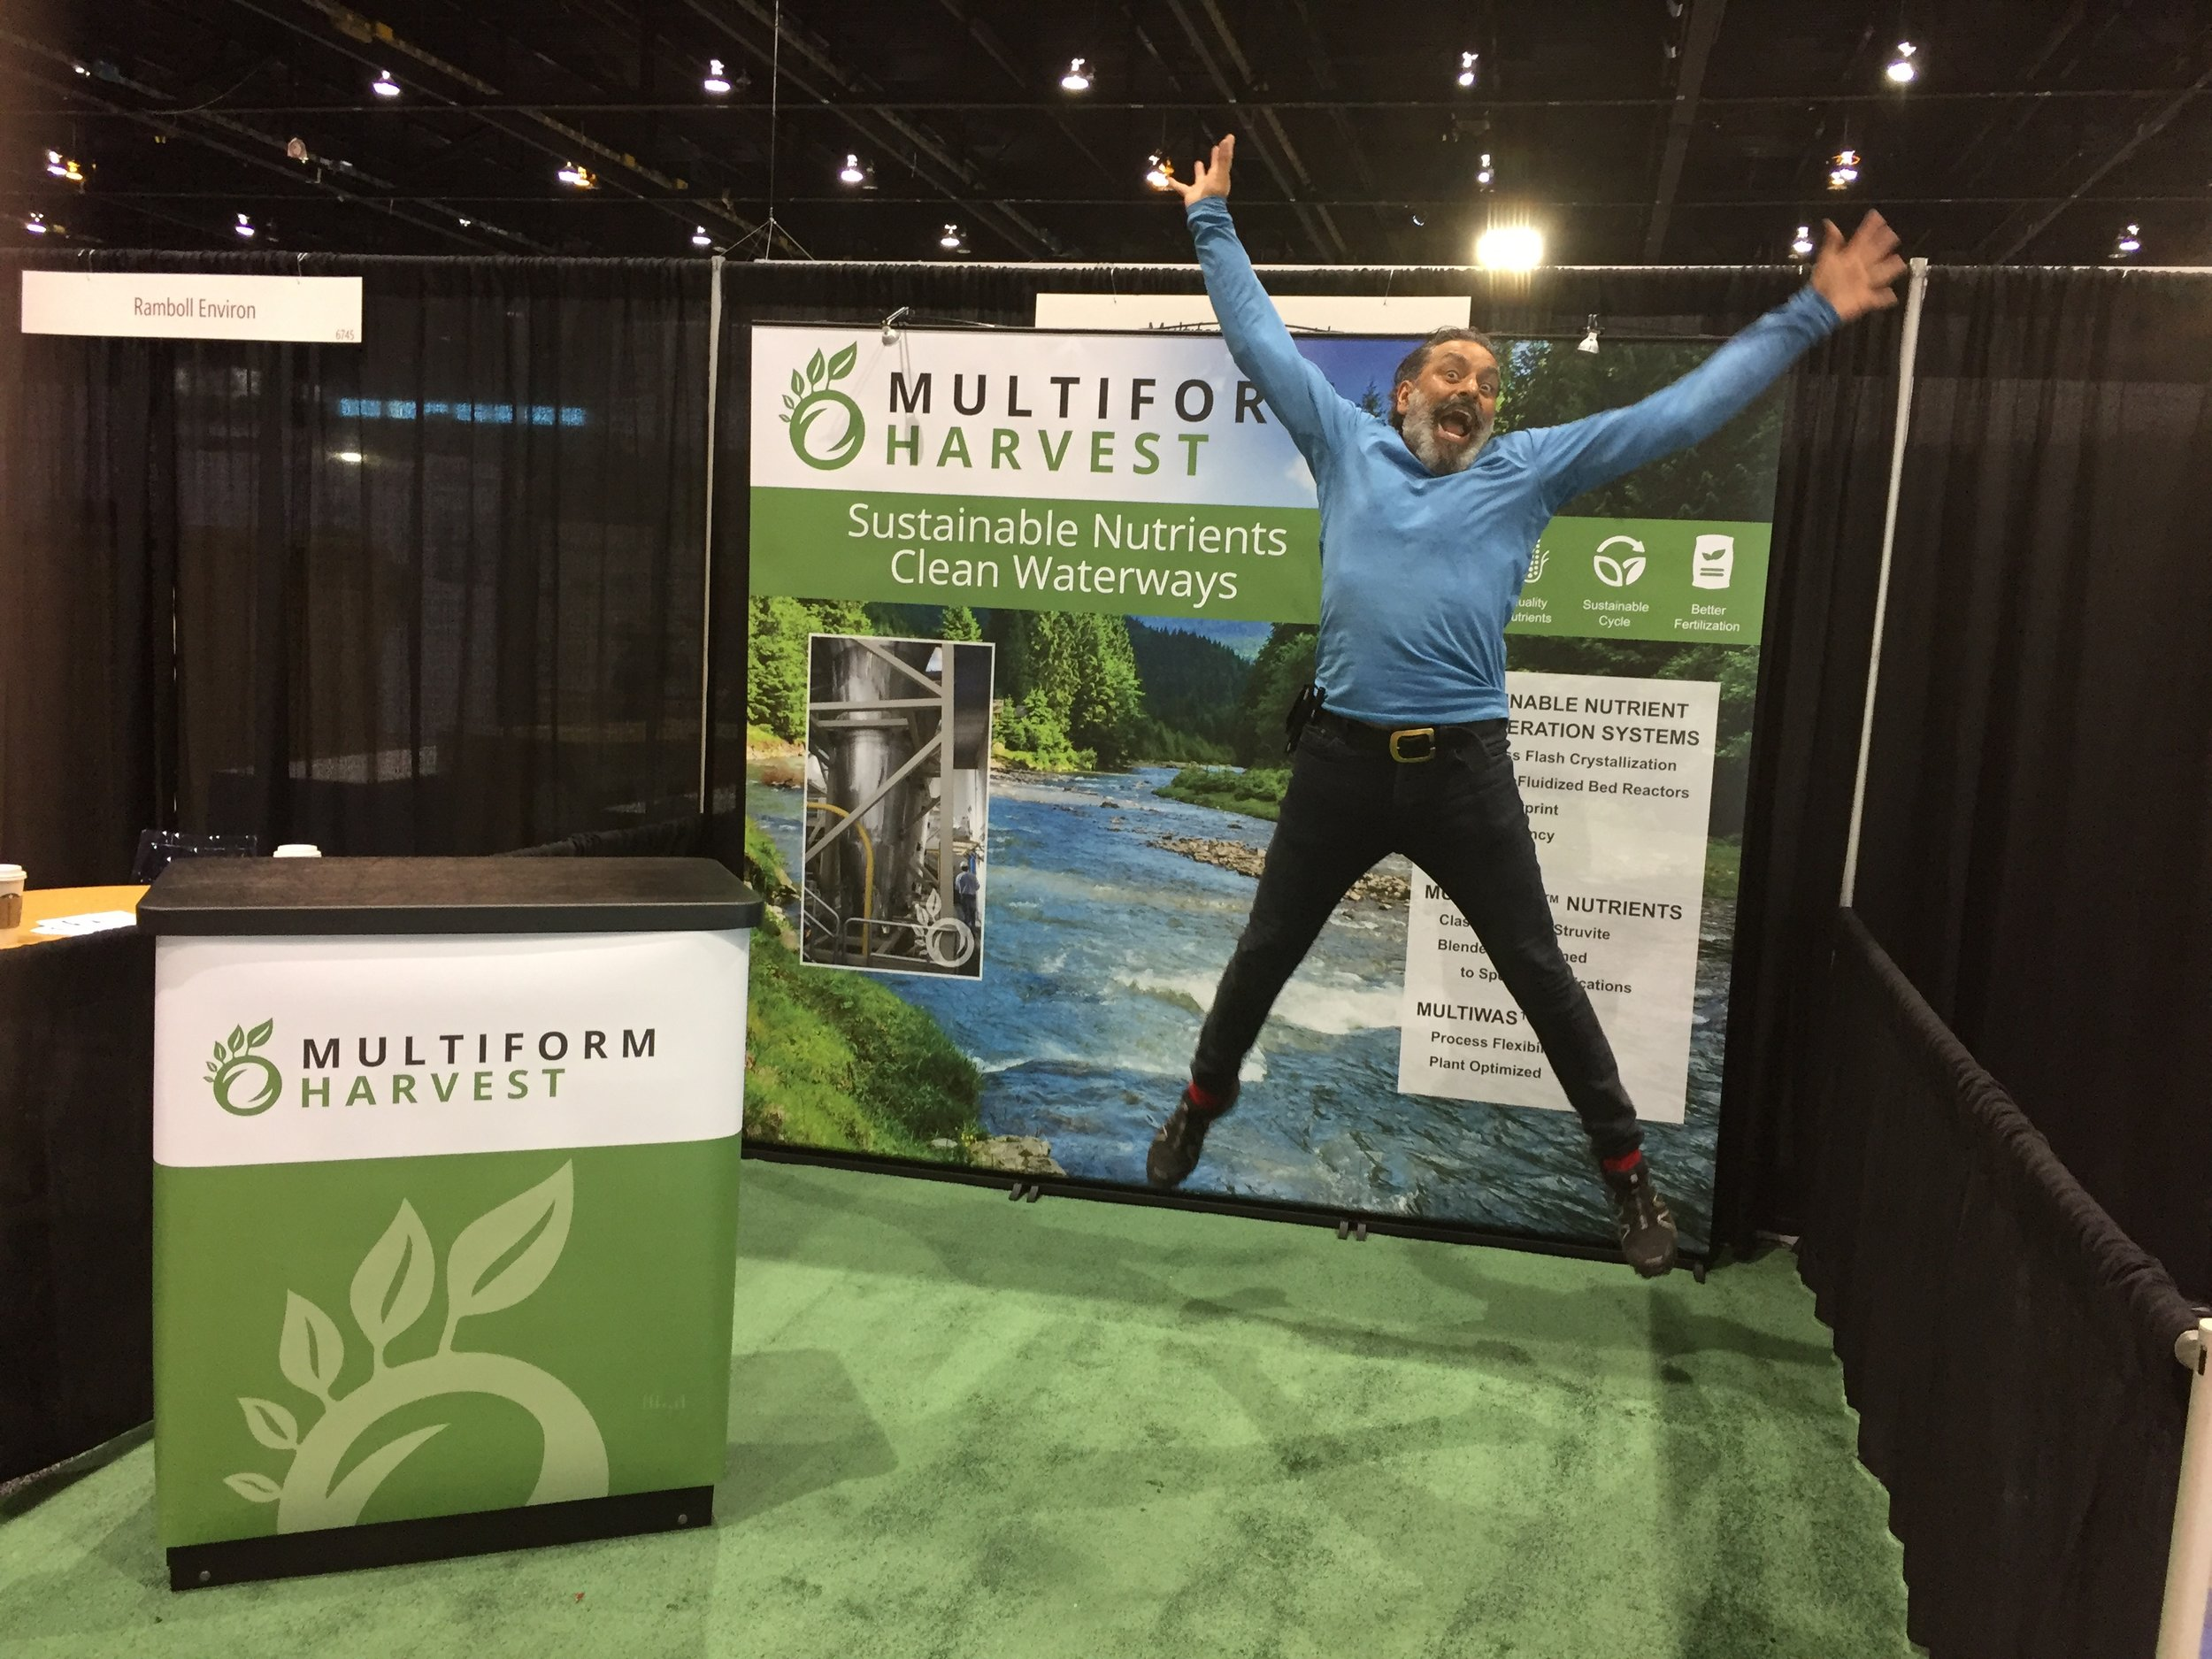 Catch up on the latest developments   Multiform leaping forward at WEFTEC 2017   Chicago, October 2-4, 2017